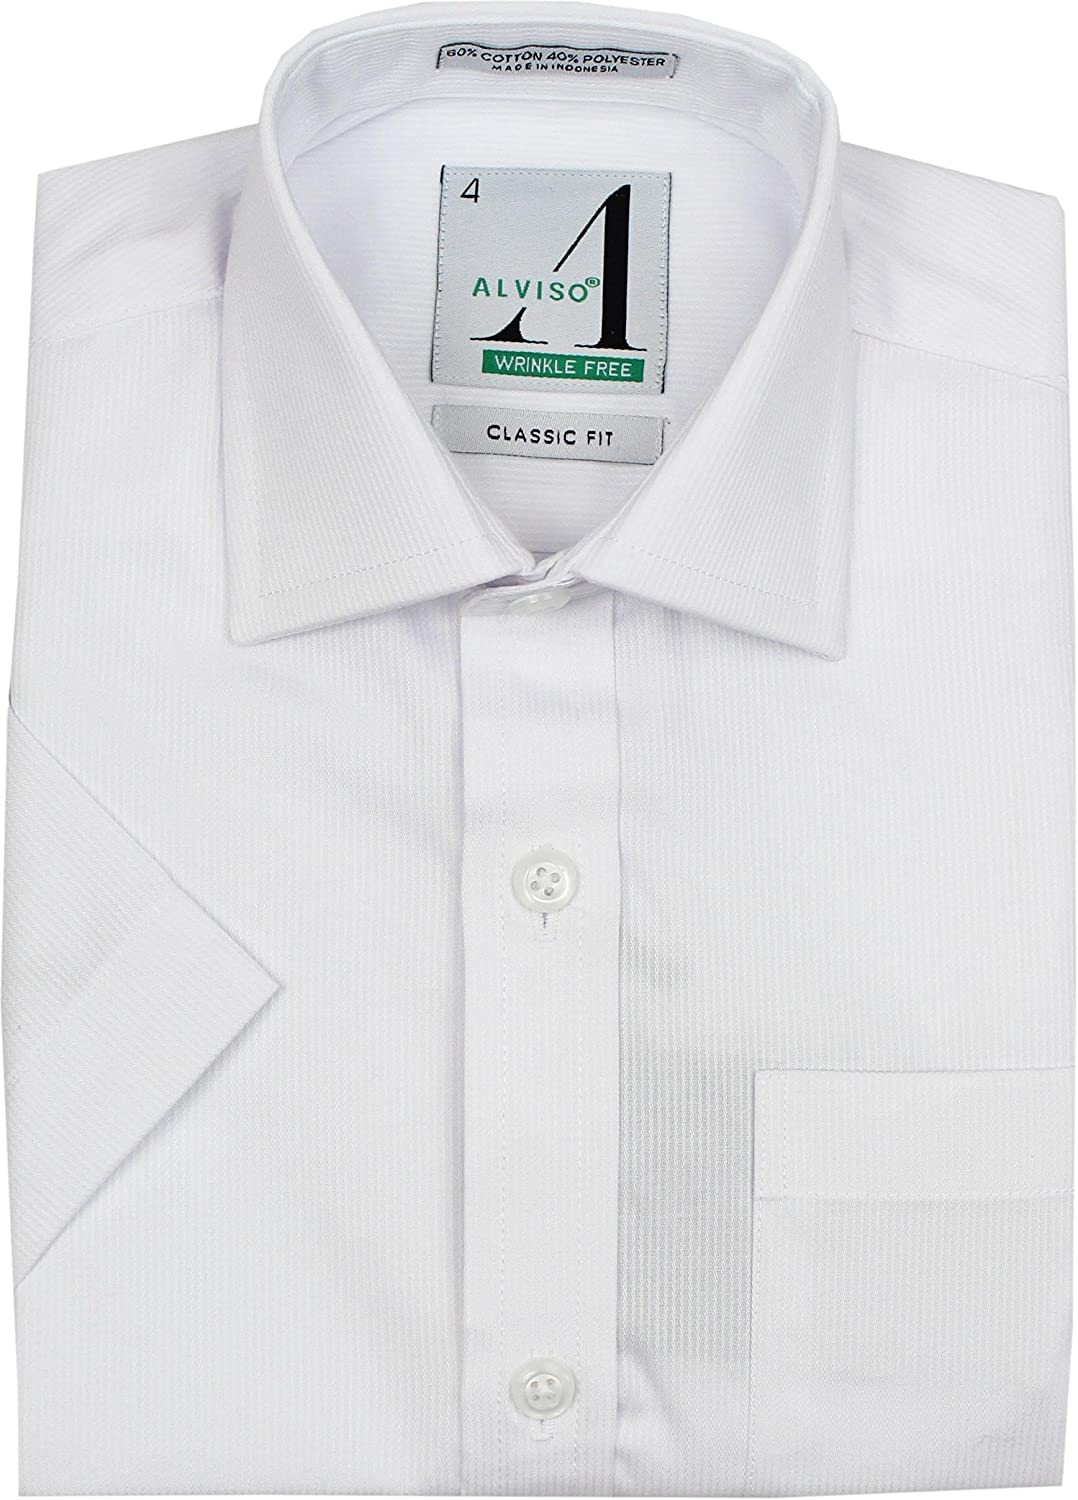 6152-BOSR Alviso Boys Textured Short Sleeve Dress Shirt